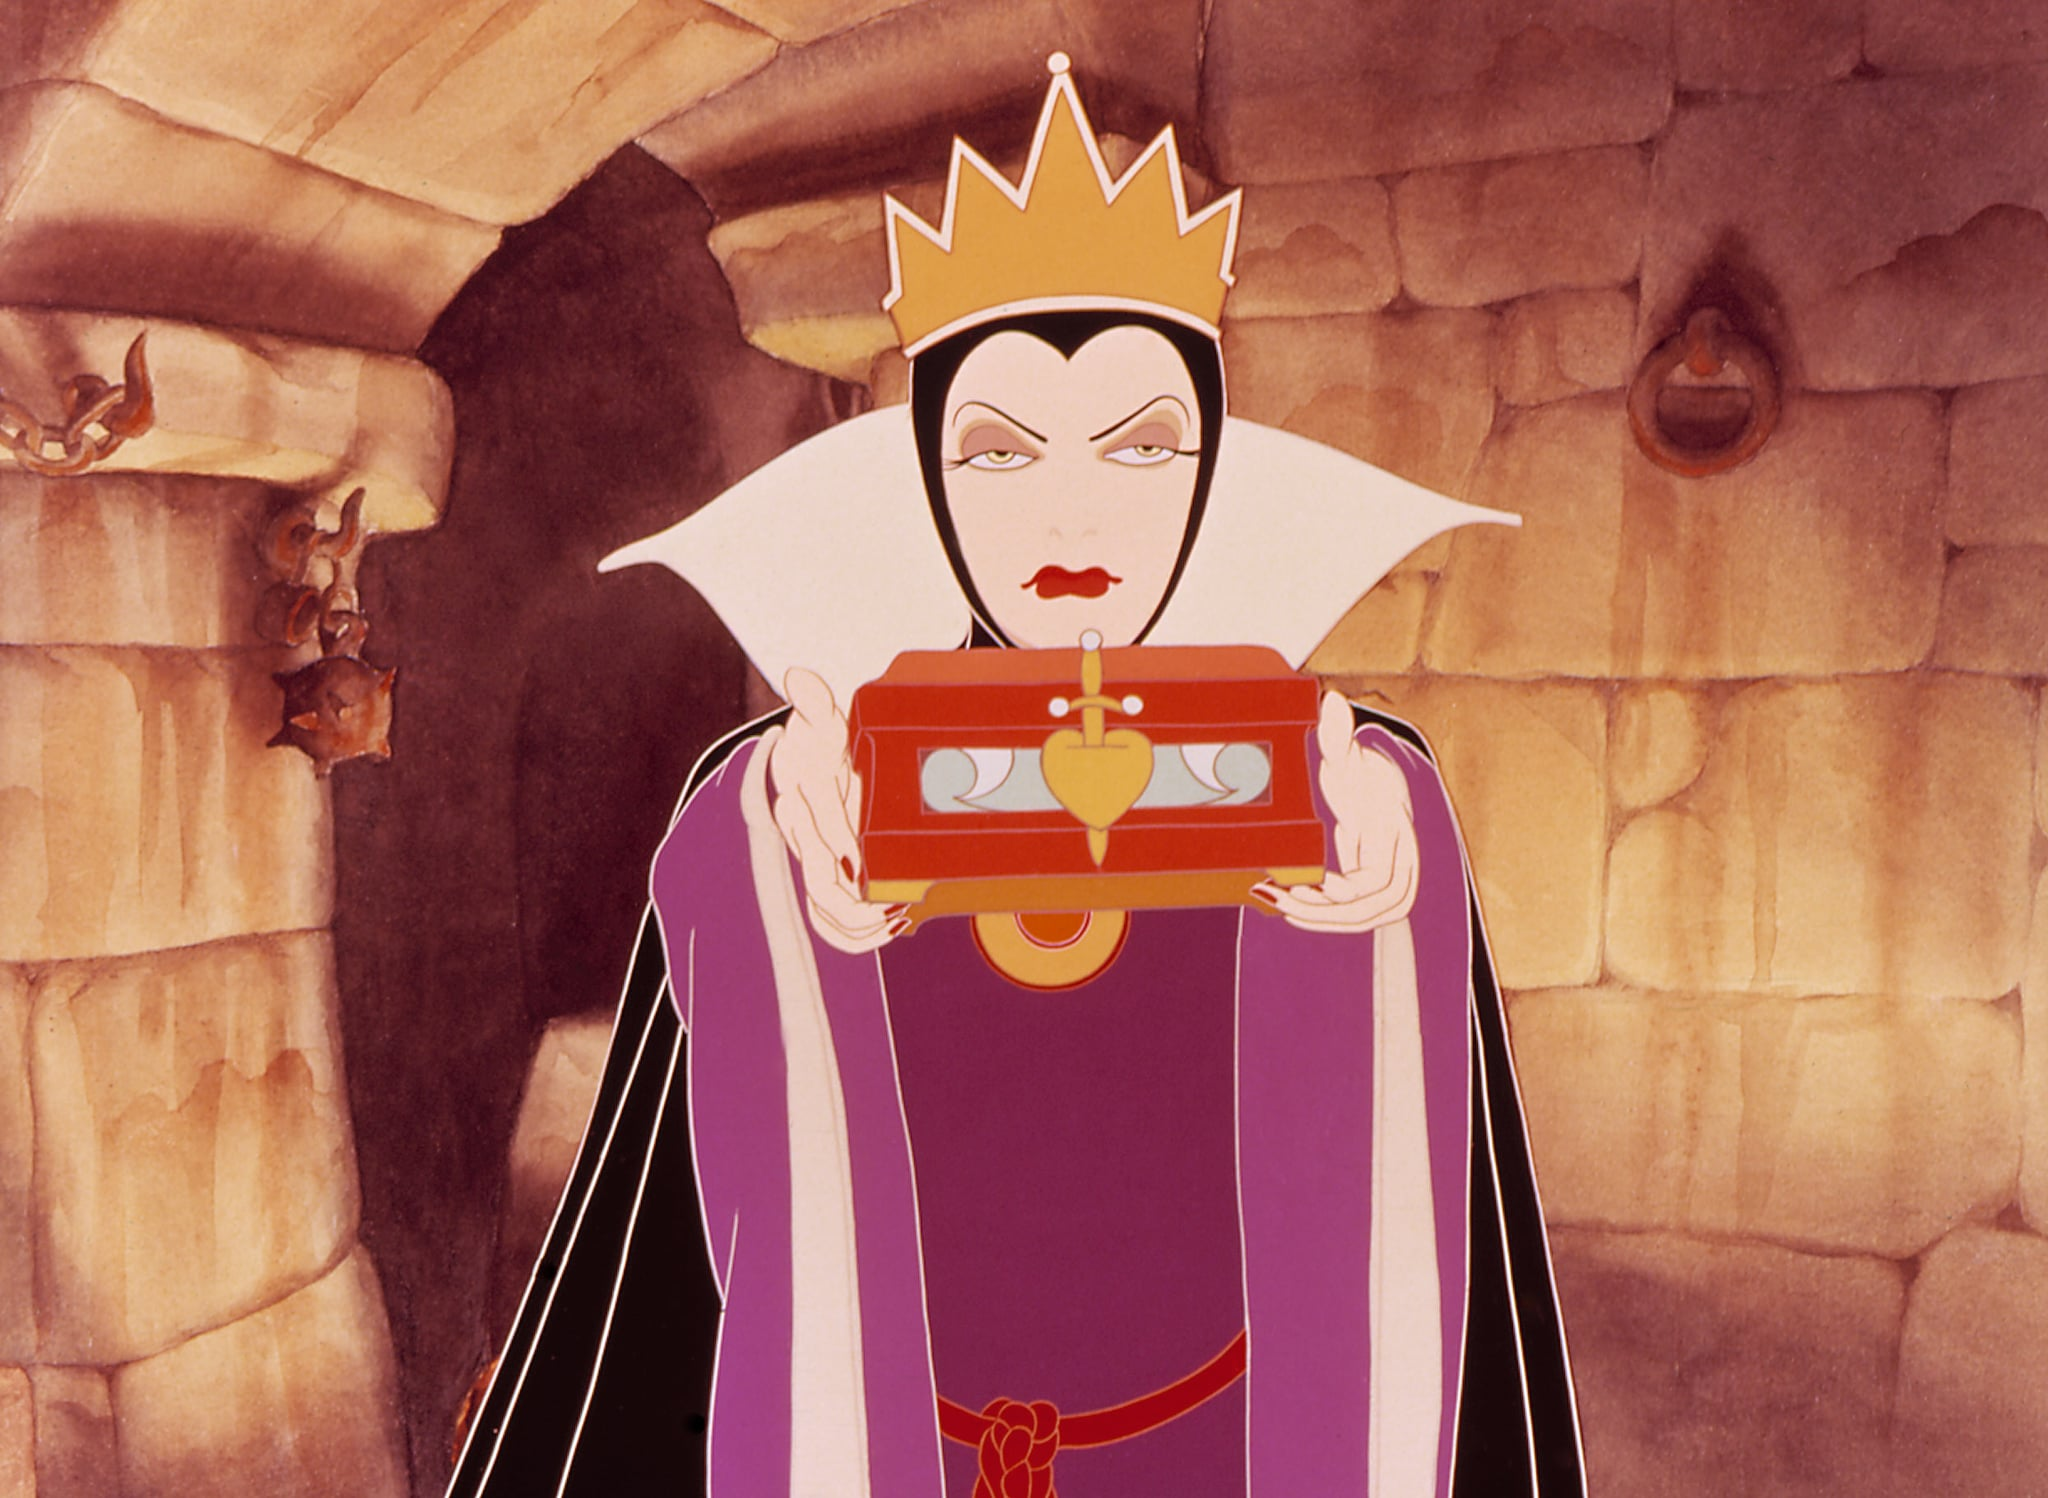 Evil Queen Snow White Seven Dwarfs 20 Characters That Scared The Life Out Of Us As Children